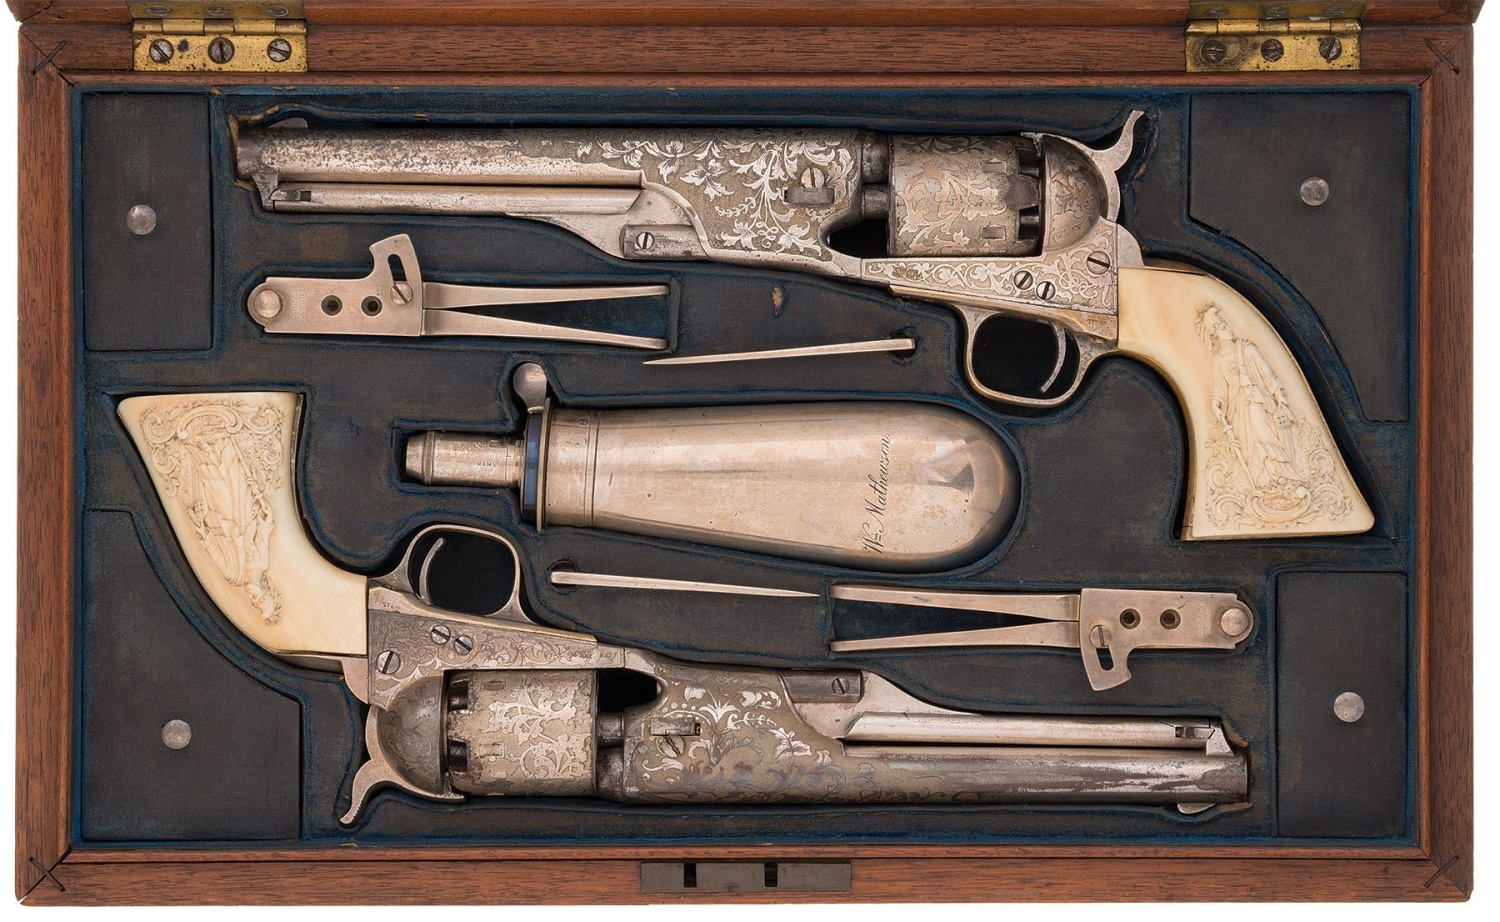 Cased Pair of Tiffany Colt Model 1861 Navy Percussion Revolvers Presented to William Buffalo Bill Mathewson